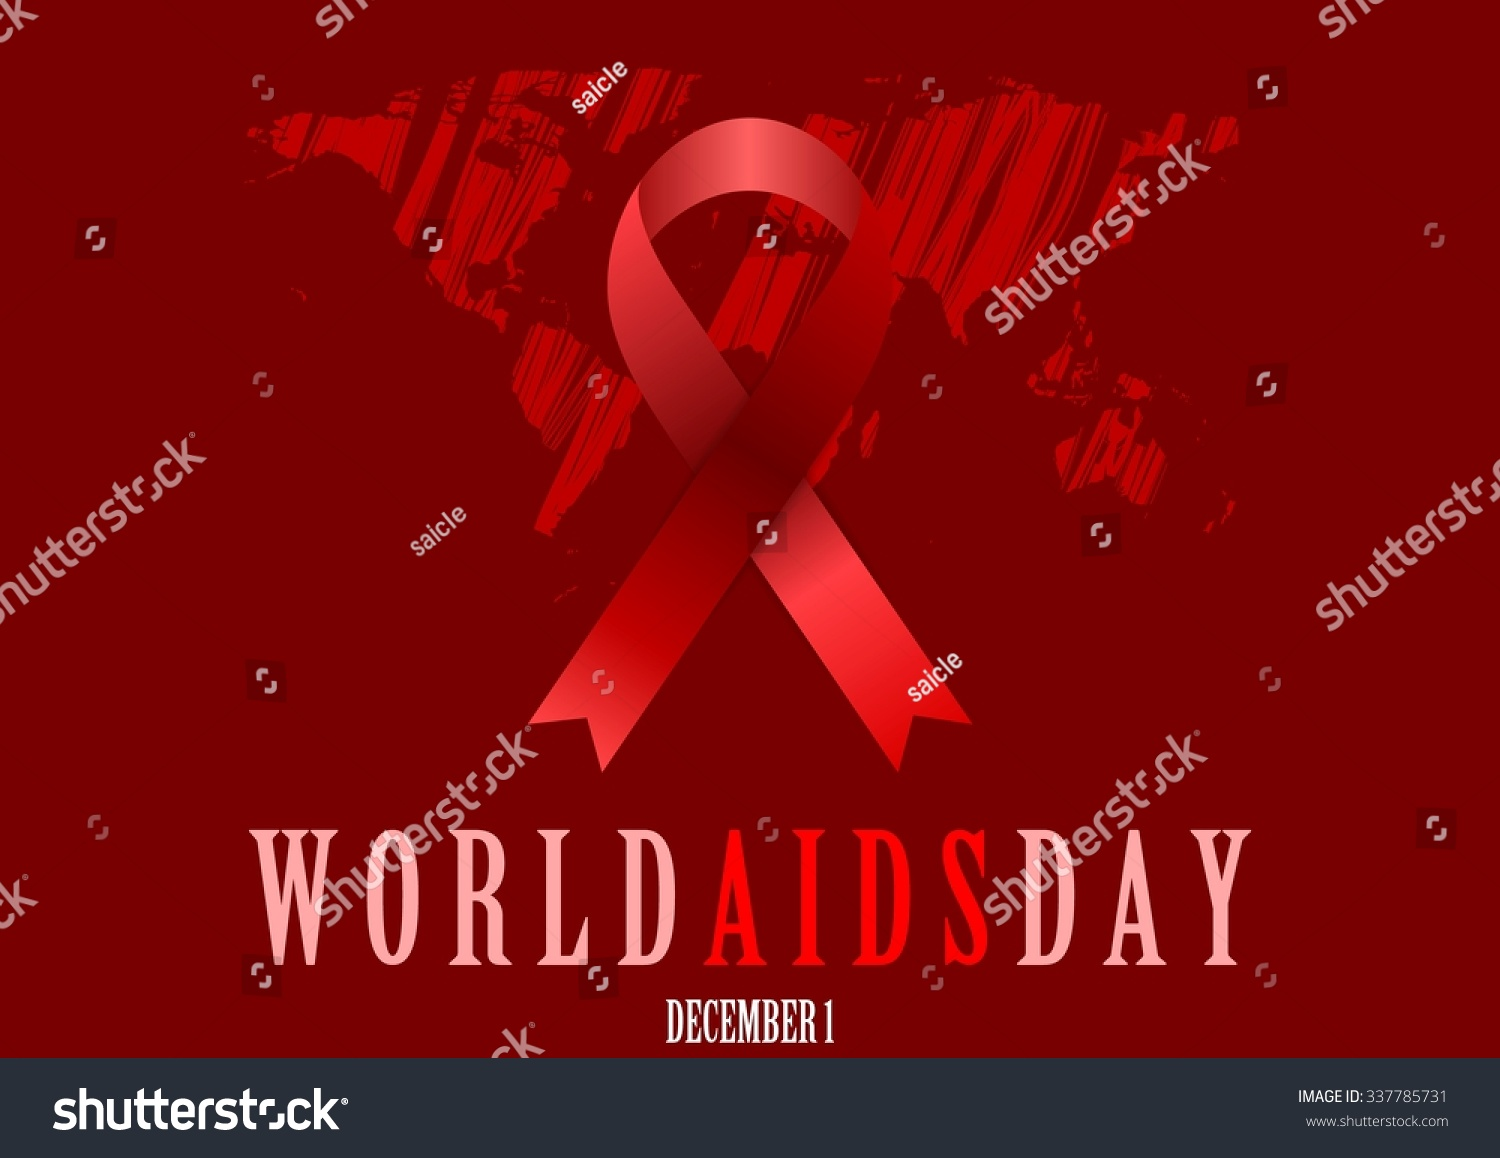 world aids day backgrounds - photo #46